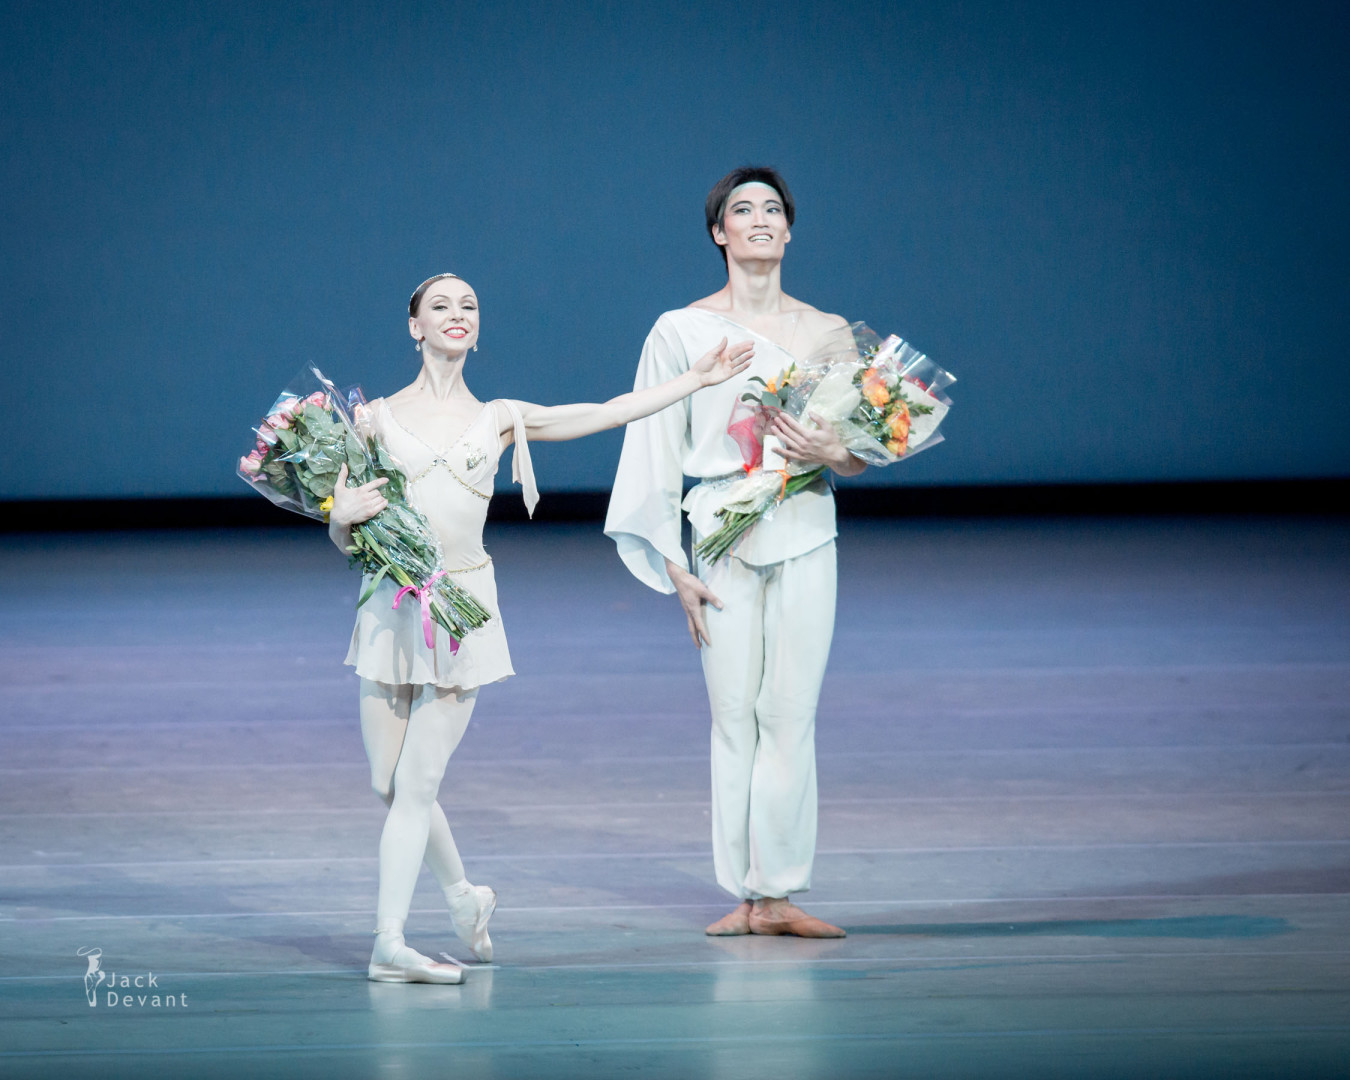 The Talisman pas de deux by Yekaterina Osmolkina (Rus. Yekaterina Osmolkina) and Kimin Kim bow